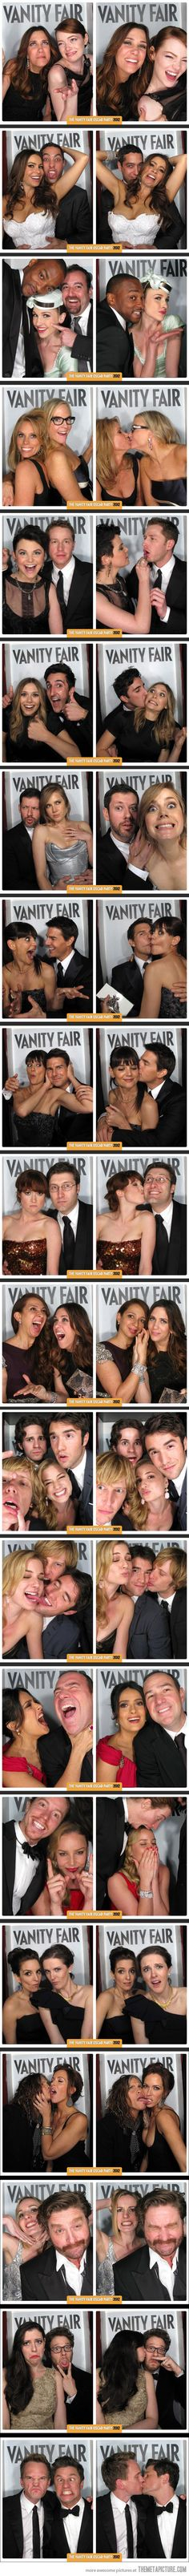 Photo Booth pictures from the Vanity Fair Oscar party - Love these!